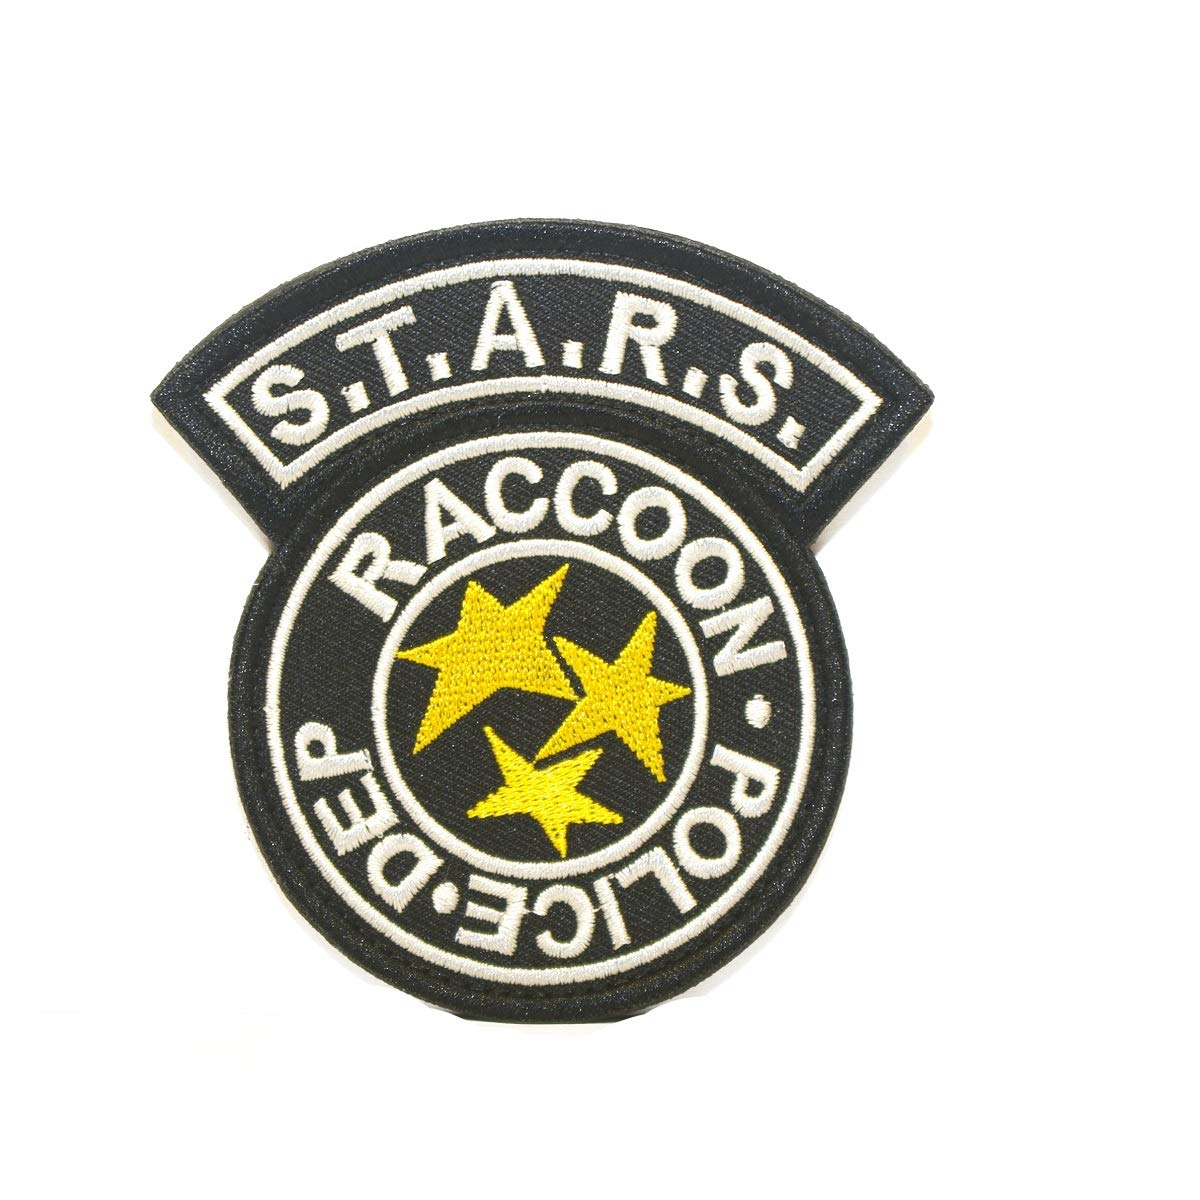 Cobra Tactical Solutions Resident Evil S.T.A.R.S. Racoon Police DEP Patch con velcro (Azul)